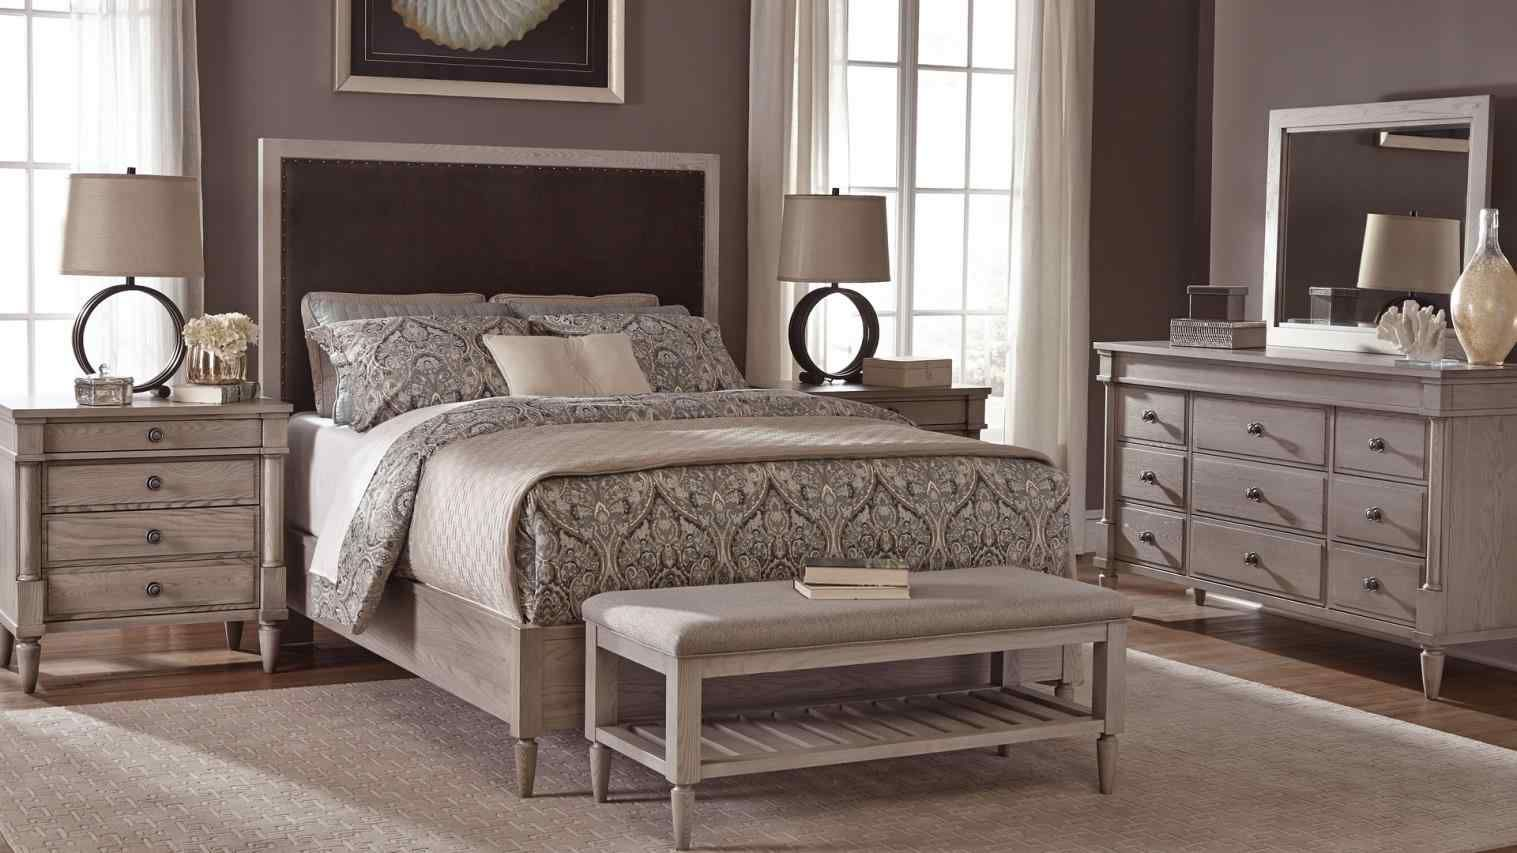 Canadian Bedroom Furniture Manufacturers Pin By Design Decors And Inpirations On Decors212